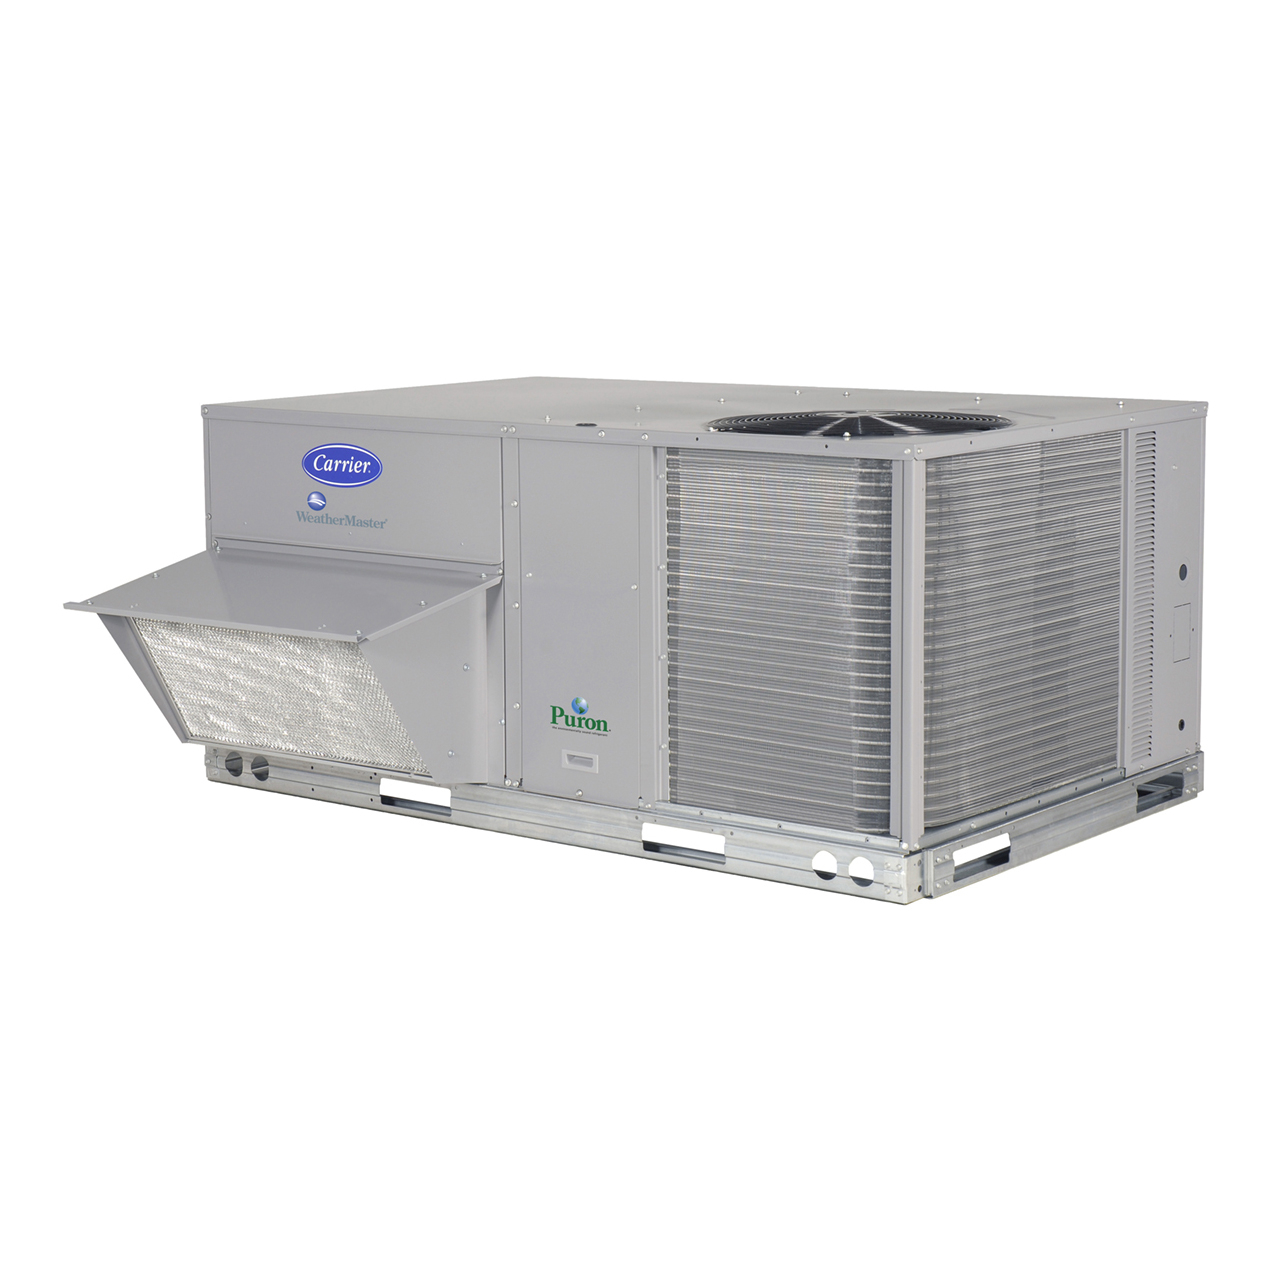 "48KC WeatherMaker® rooftop units were designed by customers for customers. With a gauge plug, centralized control center, plug & play accessory board, ""no-strip screw"" collars, and handled access panels, we've made the unit easy to install, easy to maintain, and easy to use."